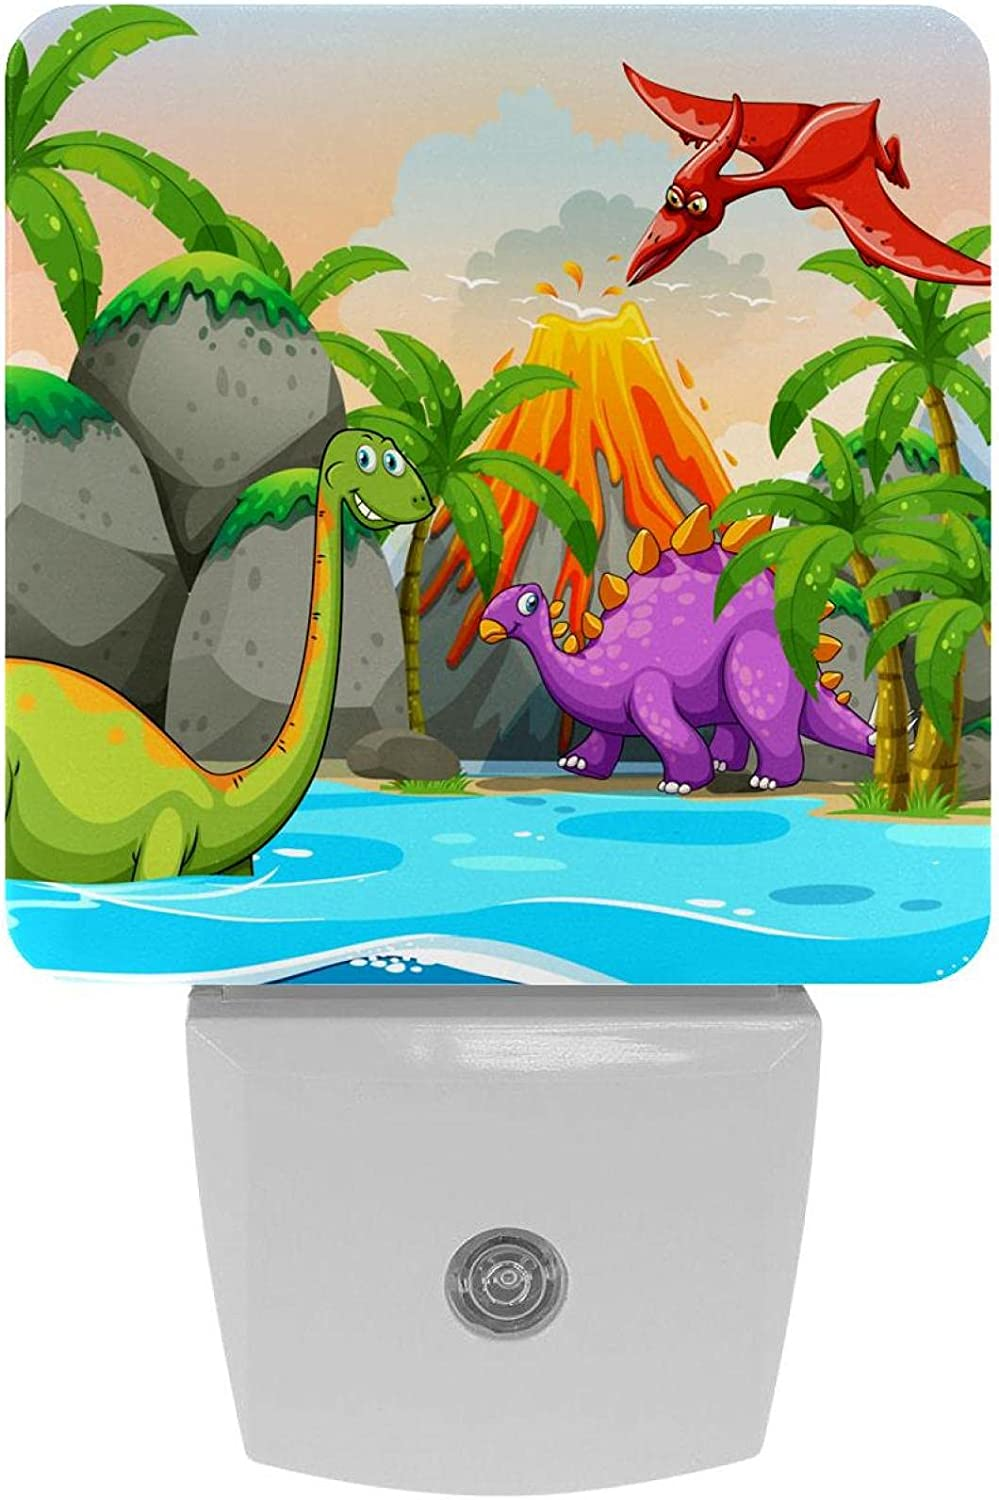 2 Pack Plug-in Nightlight LED OFFicial Night D Nature Dinosaur Direct store with Light